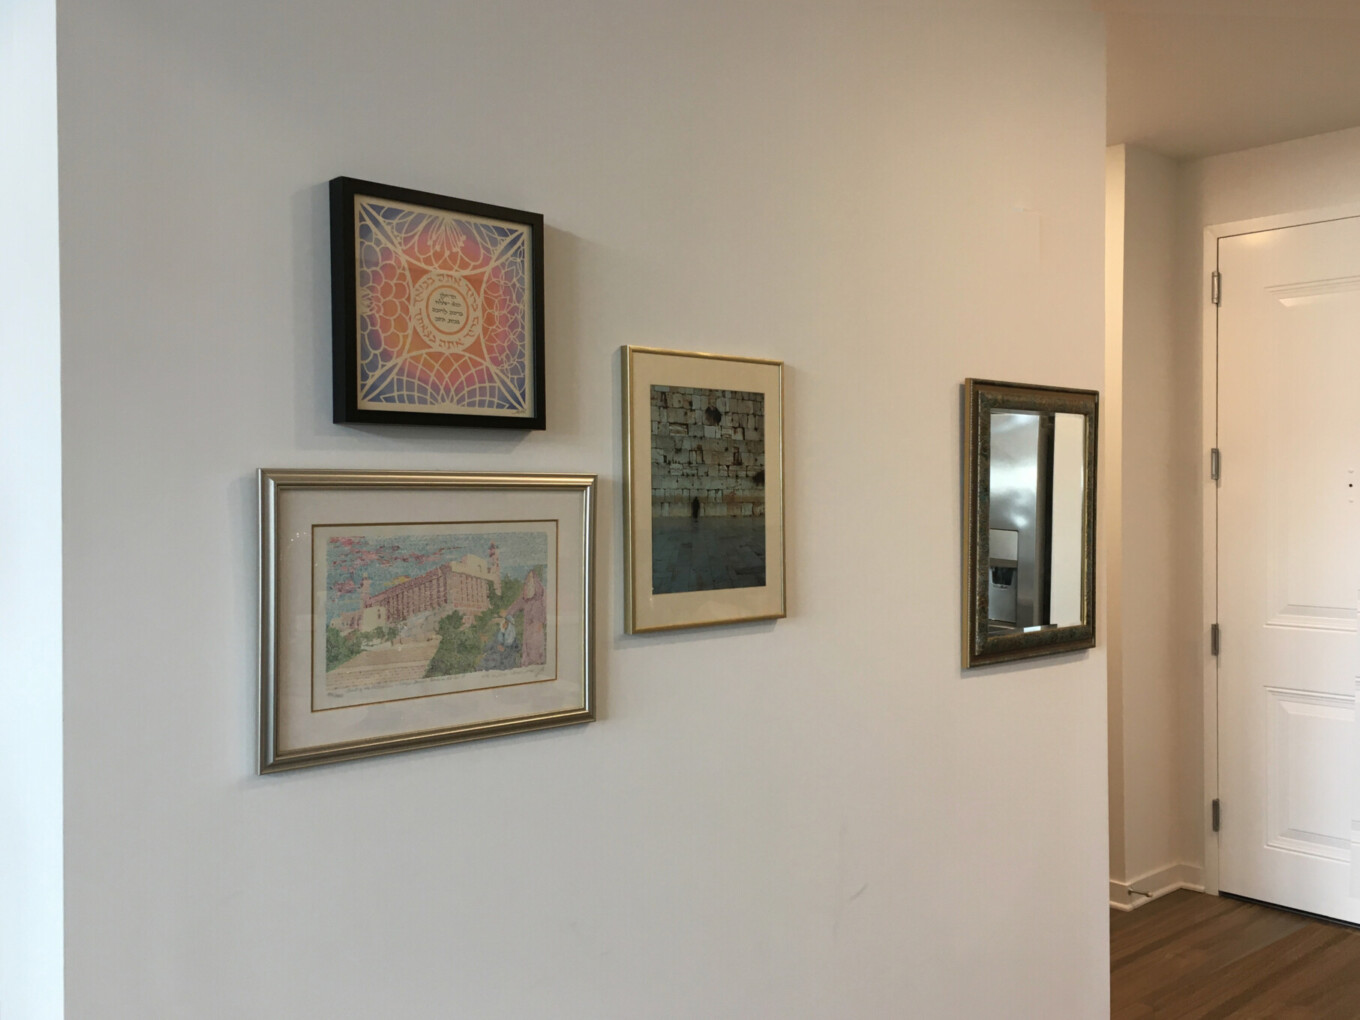 Hanging art in entrance to apartment